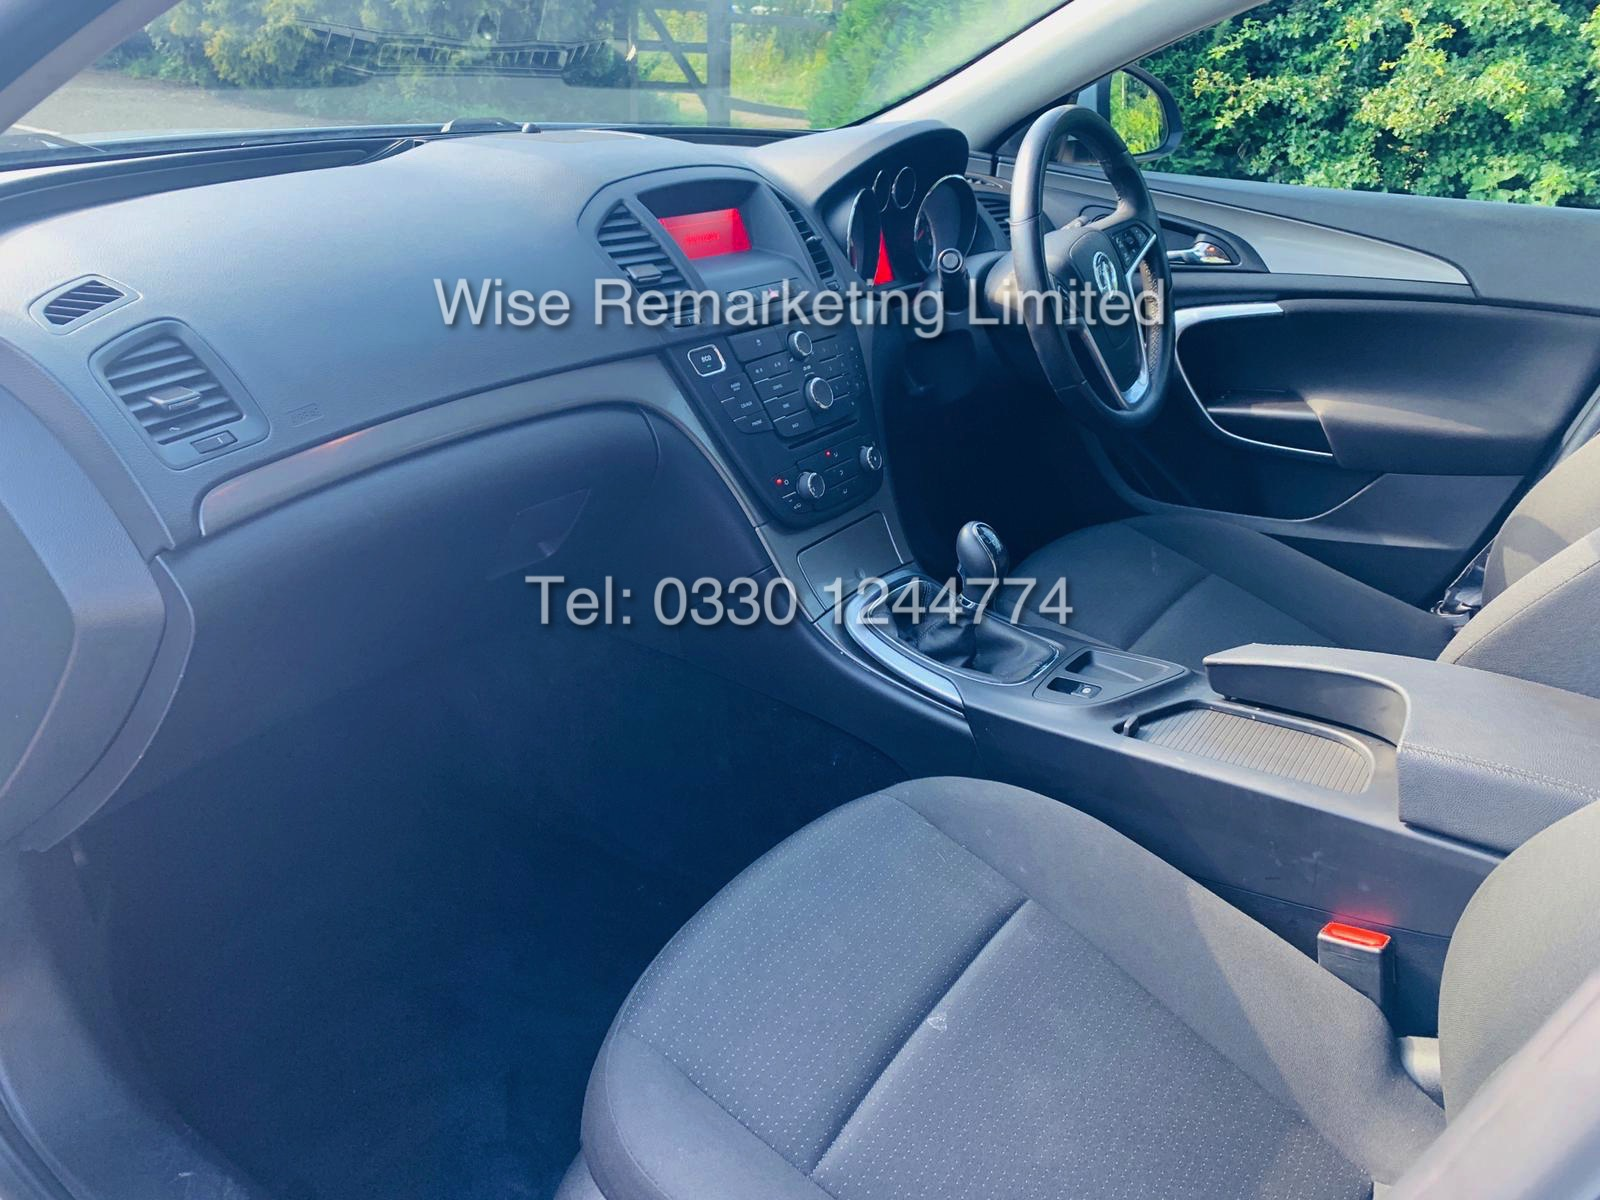 VAUXHALL INSIGNIA 2.0 CDTI ECOFLEX ES 2013 *FSH* 1 OWNER FROM NEW - Image 29 of 30